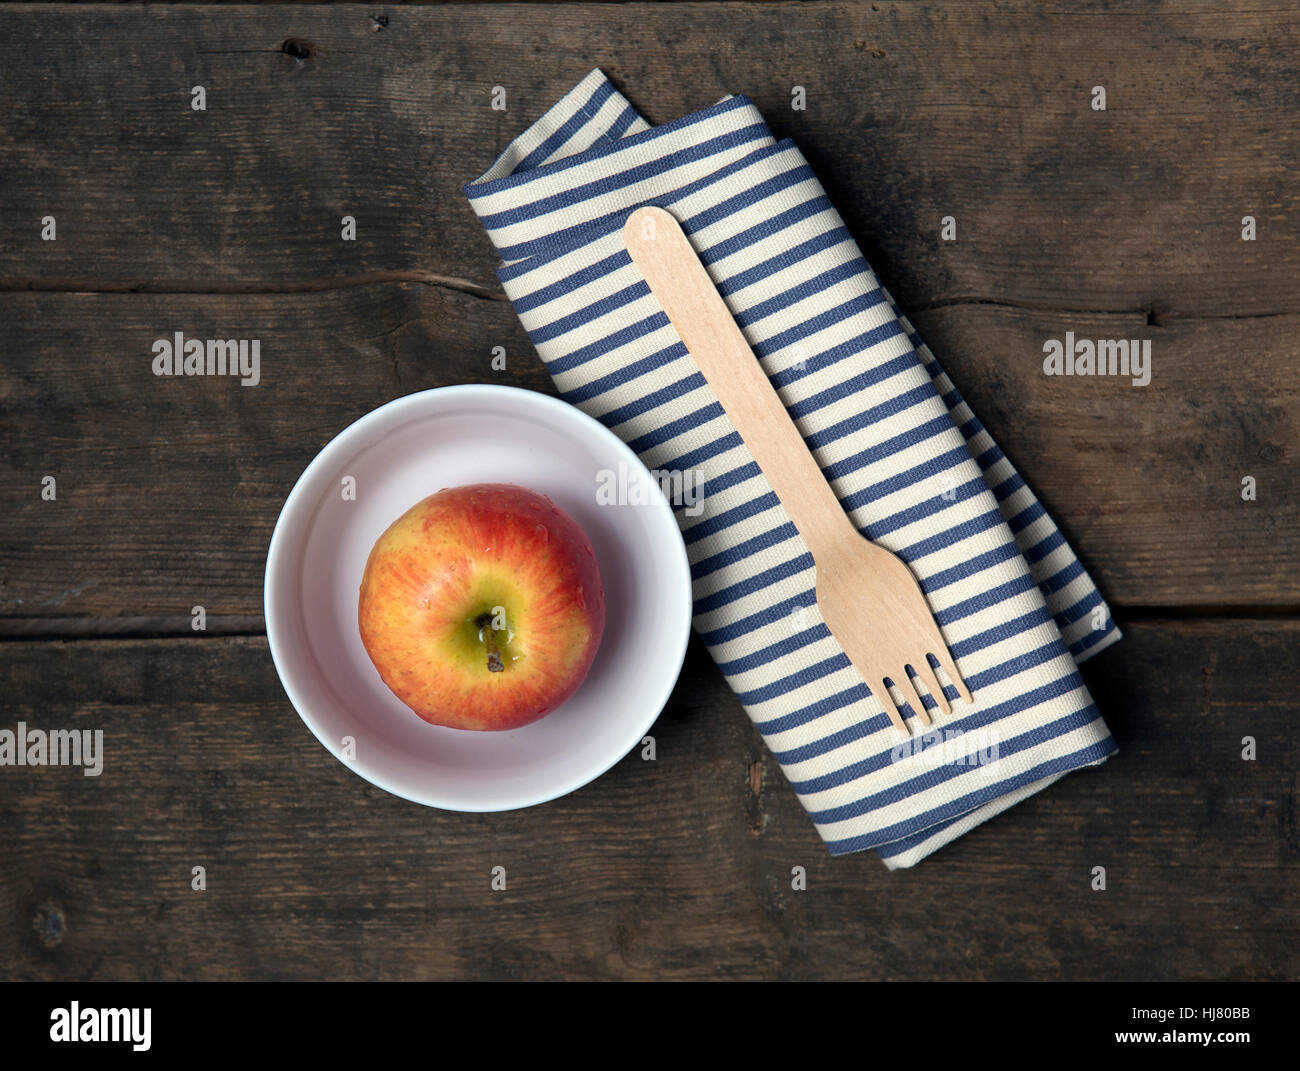 Apple in a Bowl with fork and napkin on a rustic wooden table - Stock Image